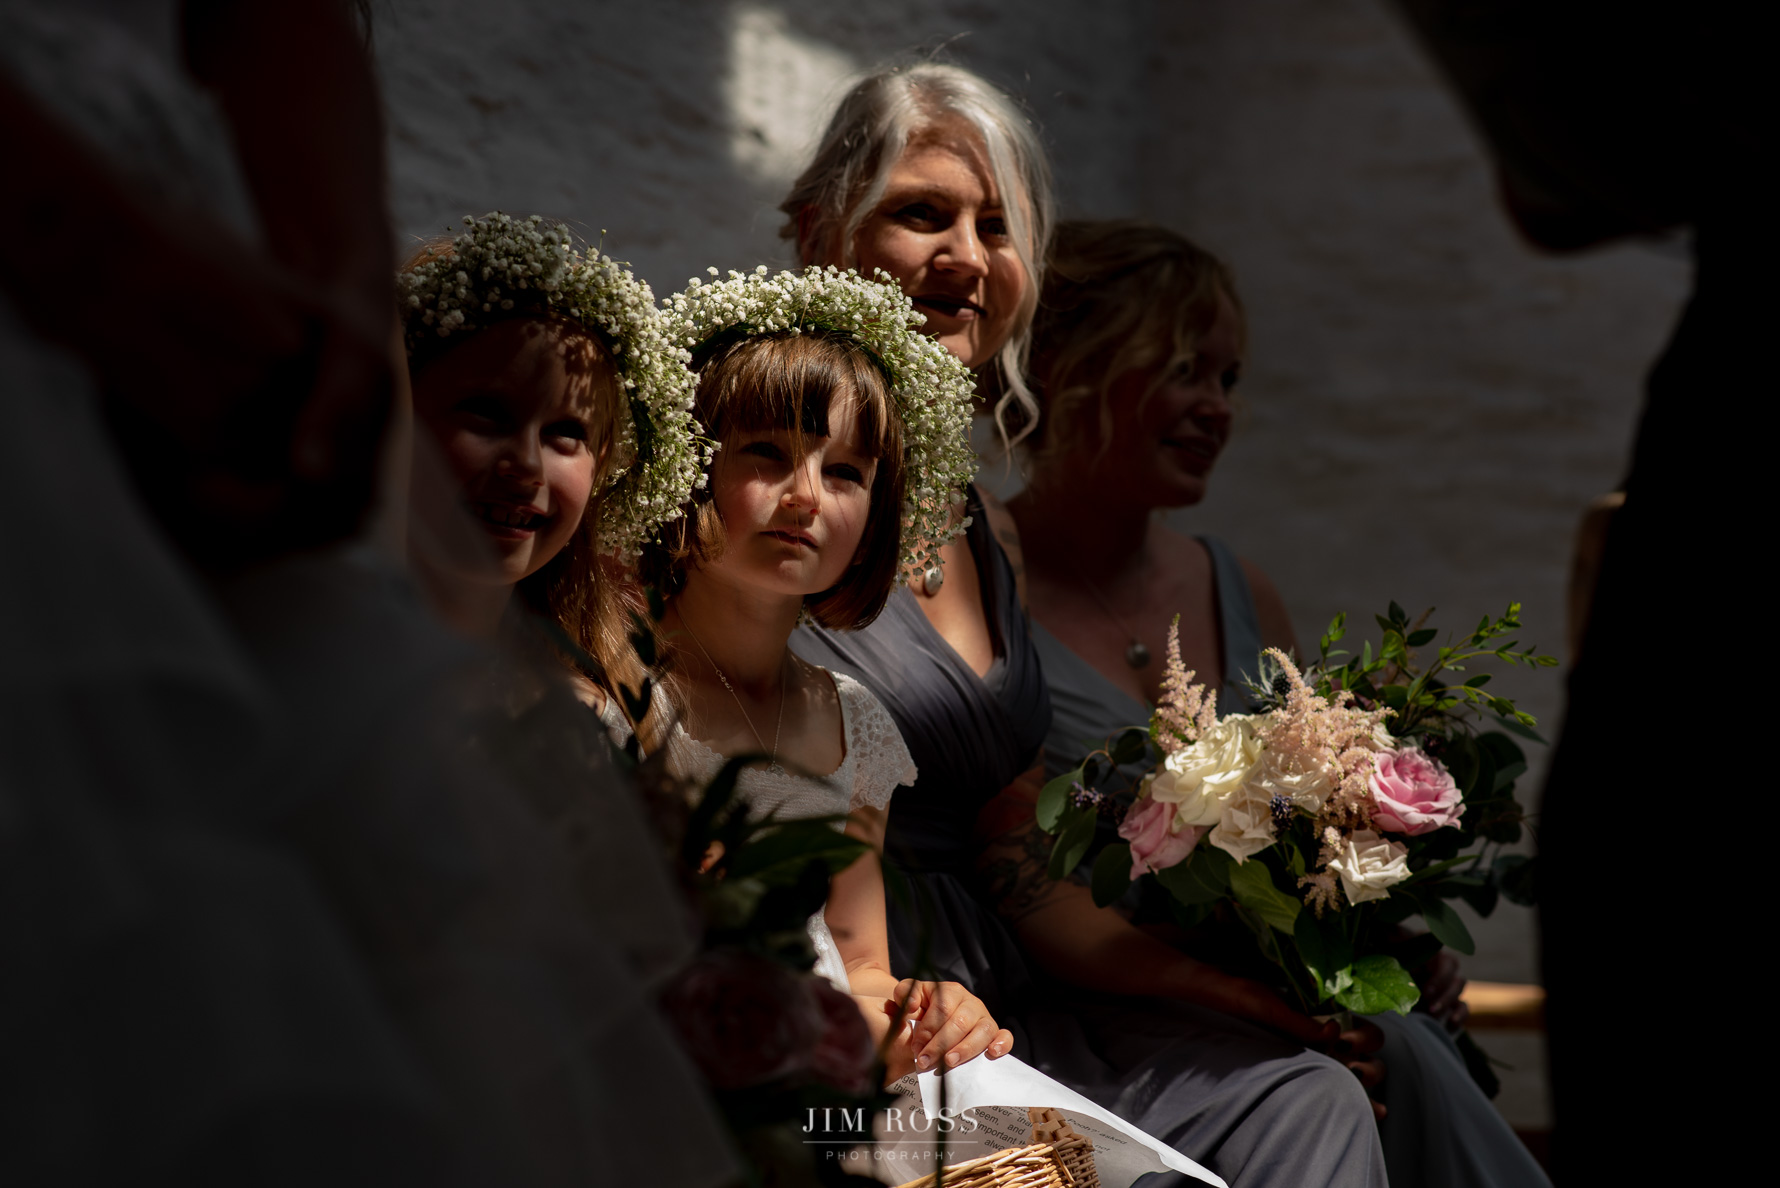 Flower girls in medieval church